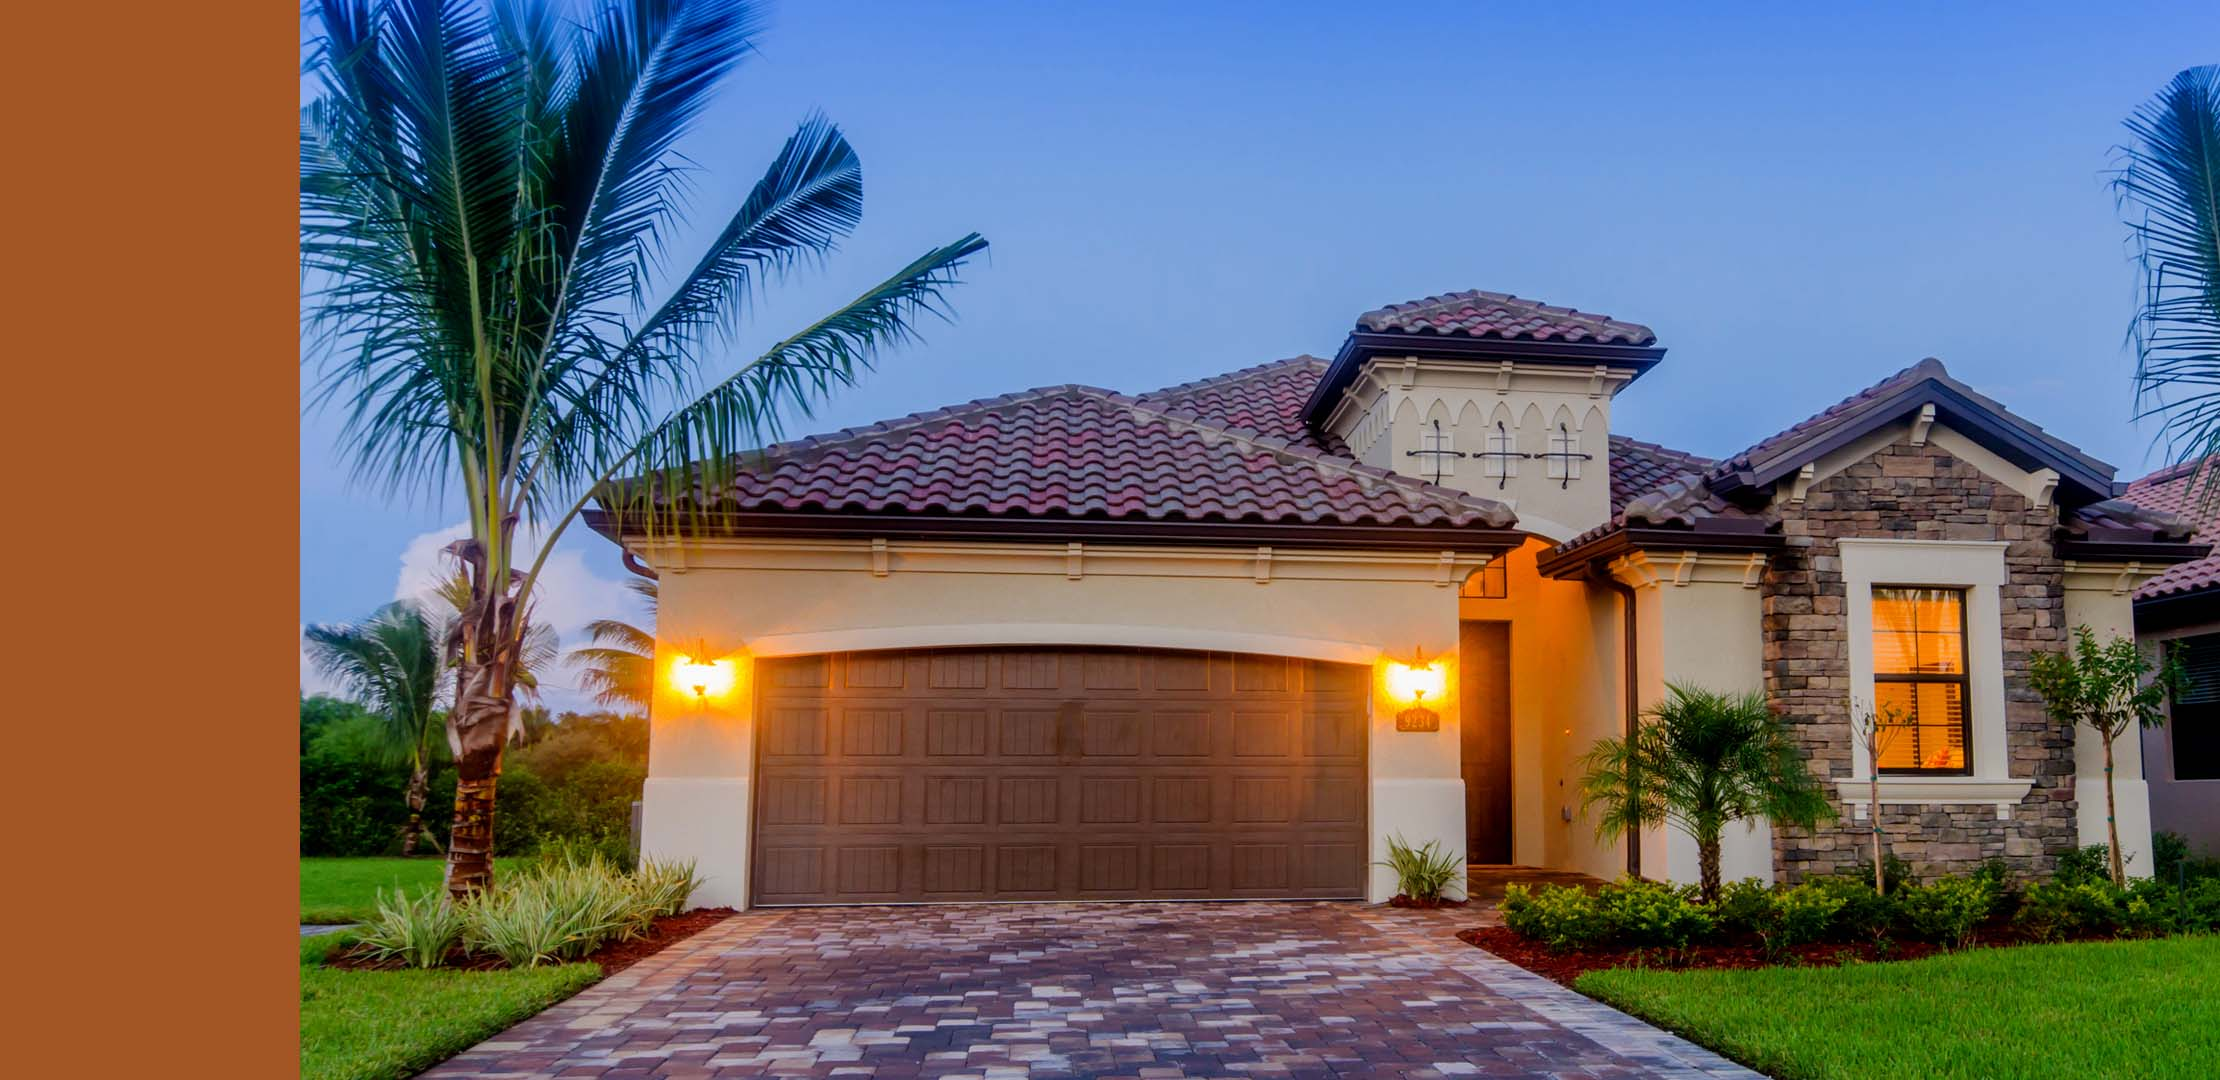 Welcome to Kodei Properties Vacation Rentals in Naples, Florida